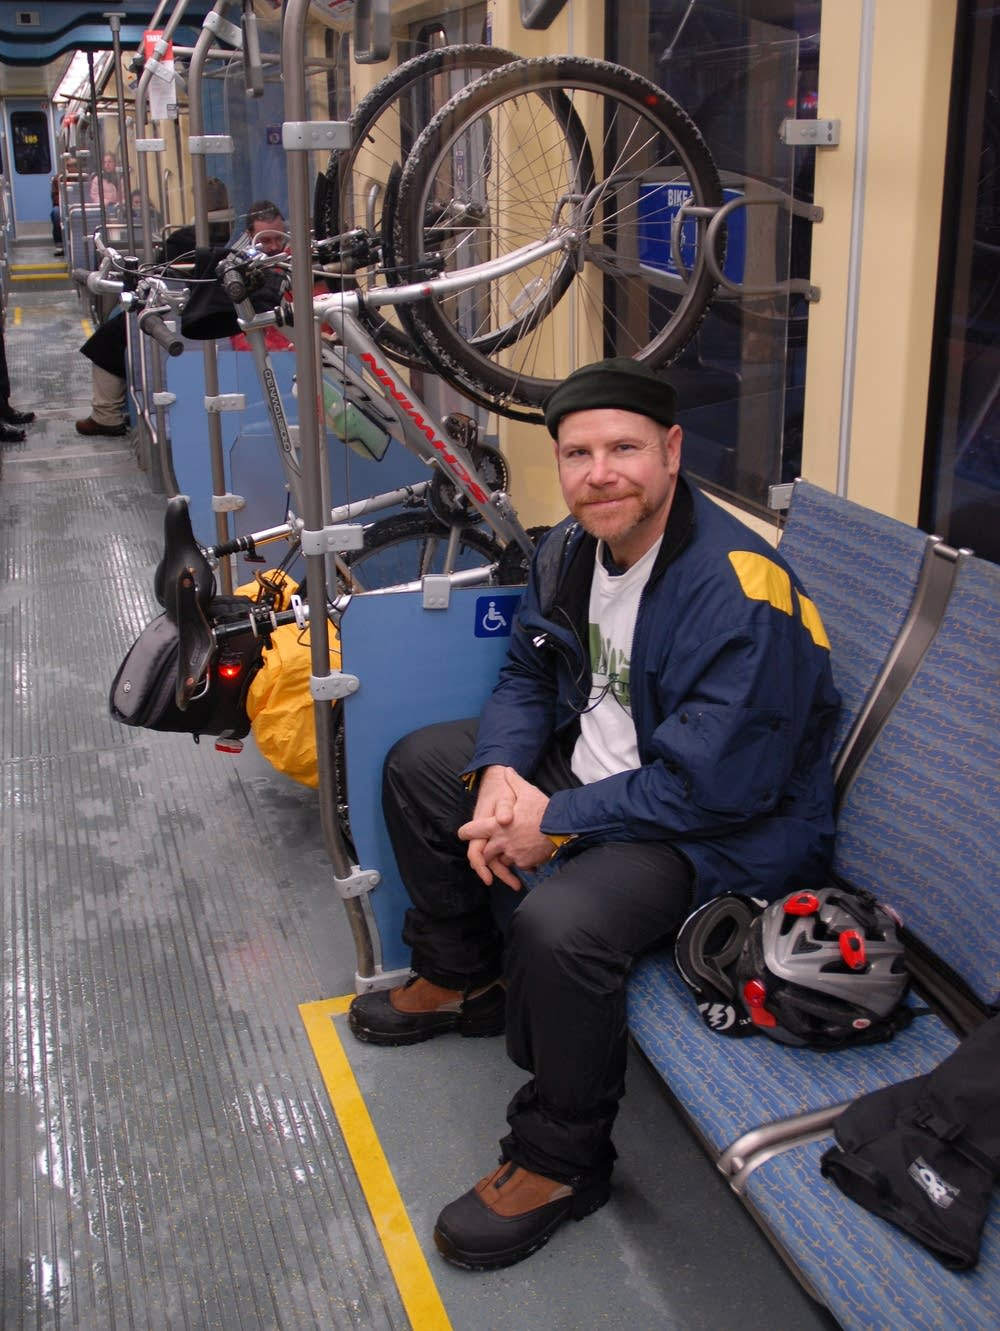 Paul Stewart takes his bike on the LRT.